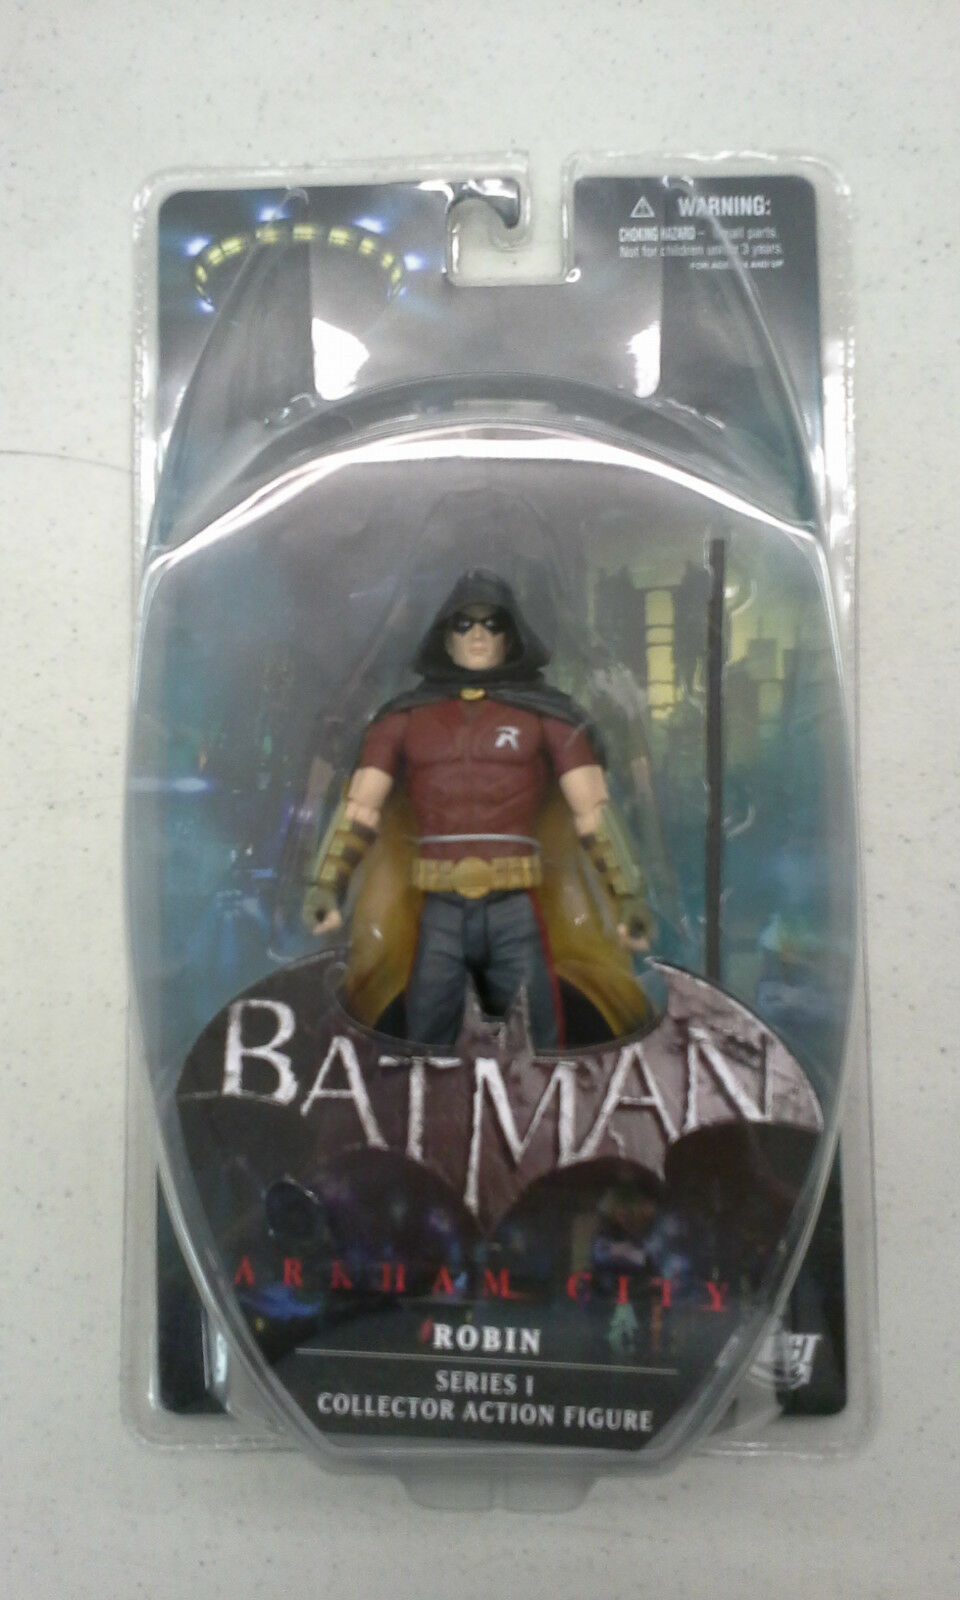 Batman Batman Batman Arkham City ROBIN Series 1 I Collector Action Figure New Sealed fb70ea